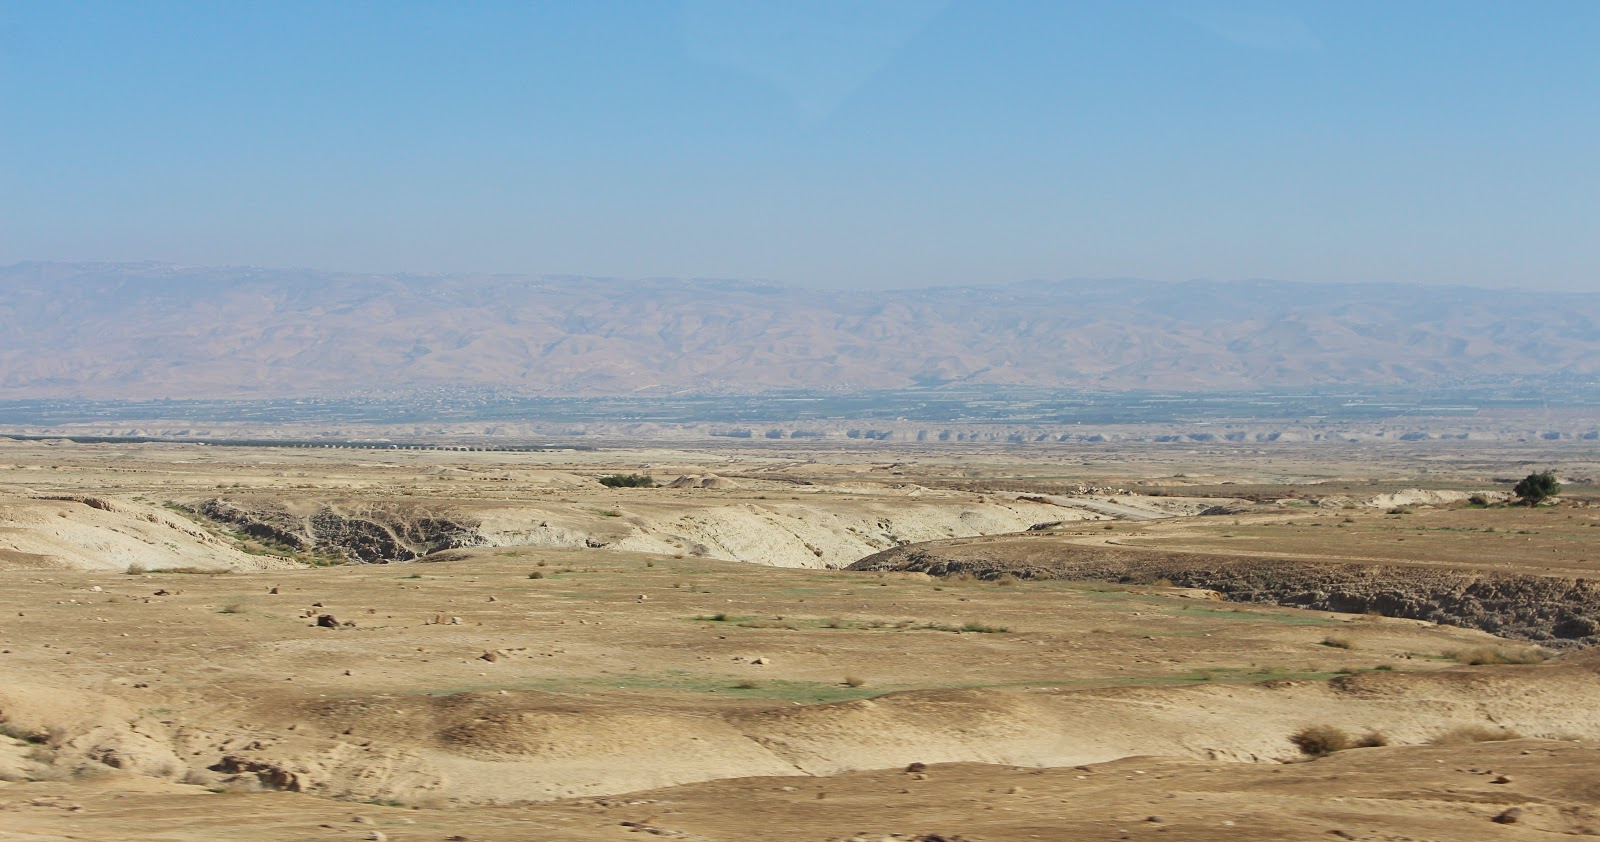 Beit 'Abara (The Jordan River): Things To Do in Israel